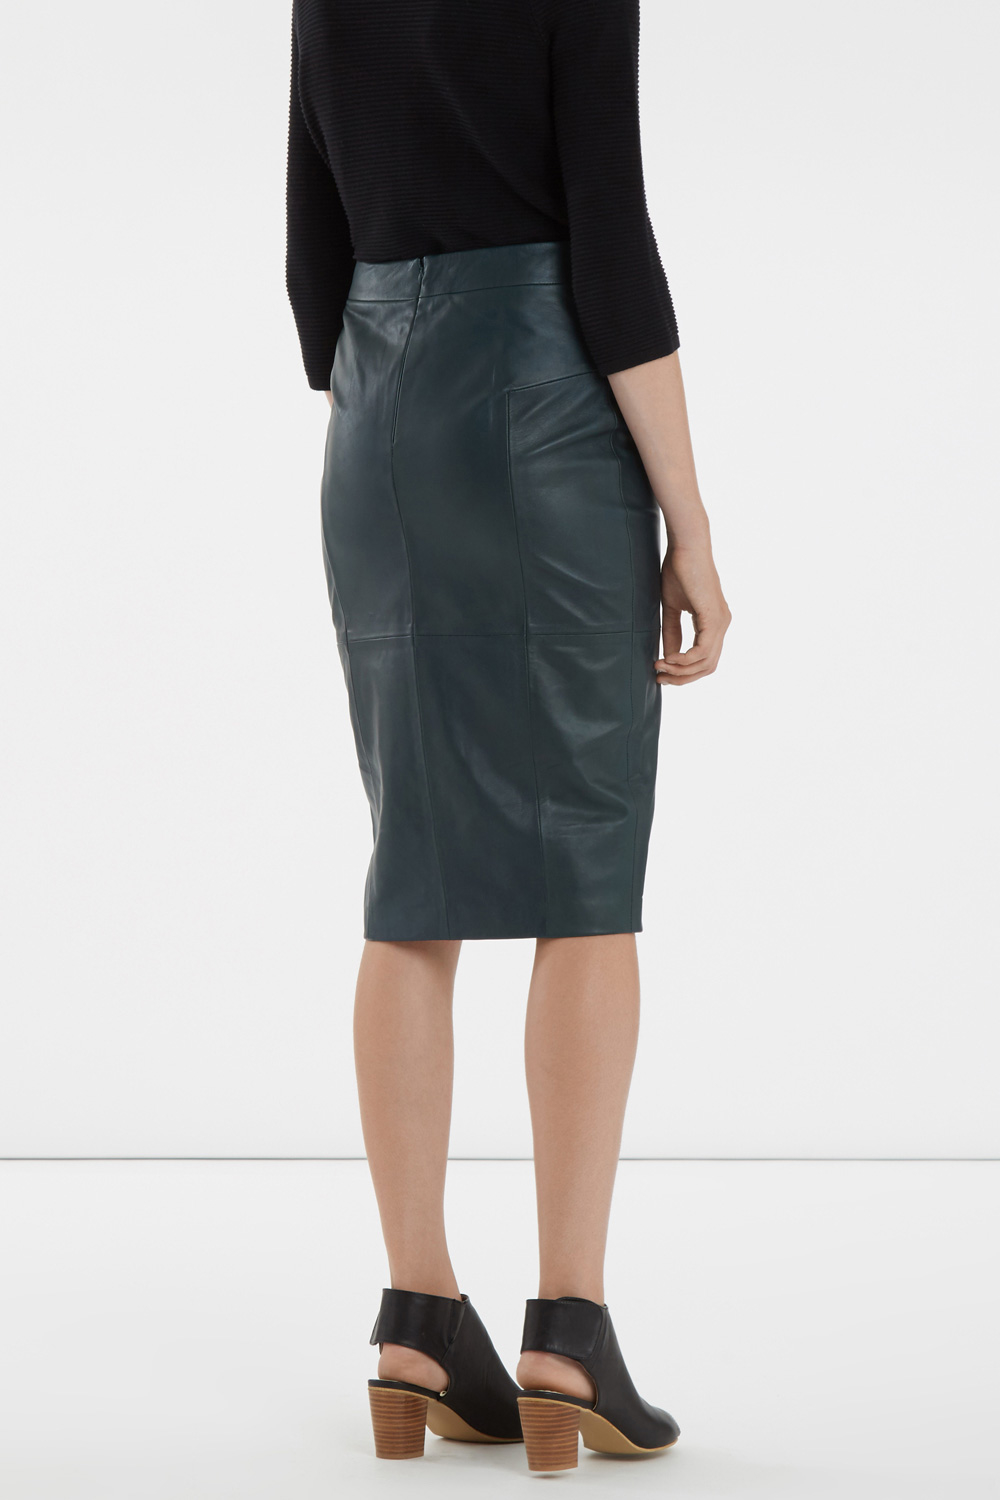 f612c2d67 Oasis Madison Leather Pencil Skirt in Green - Lyst